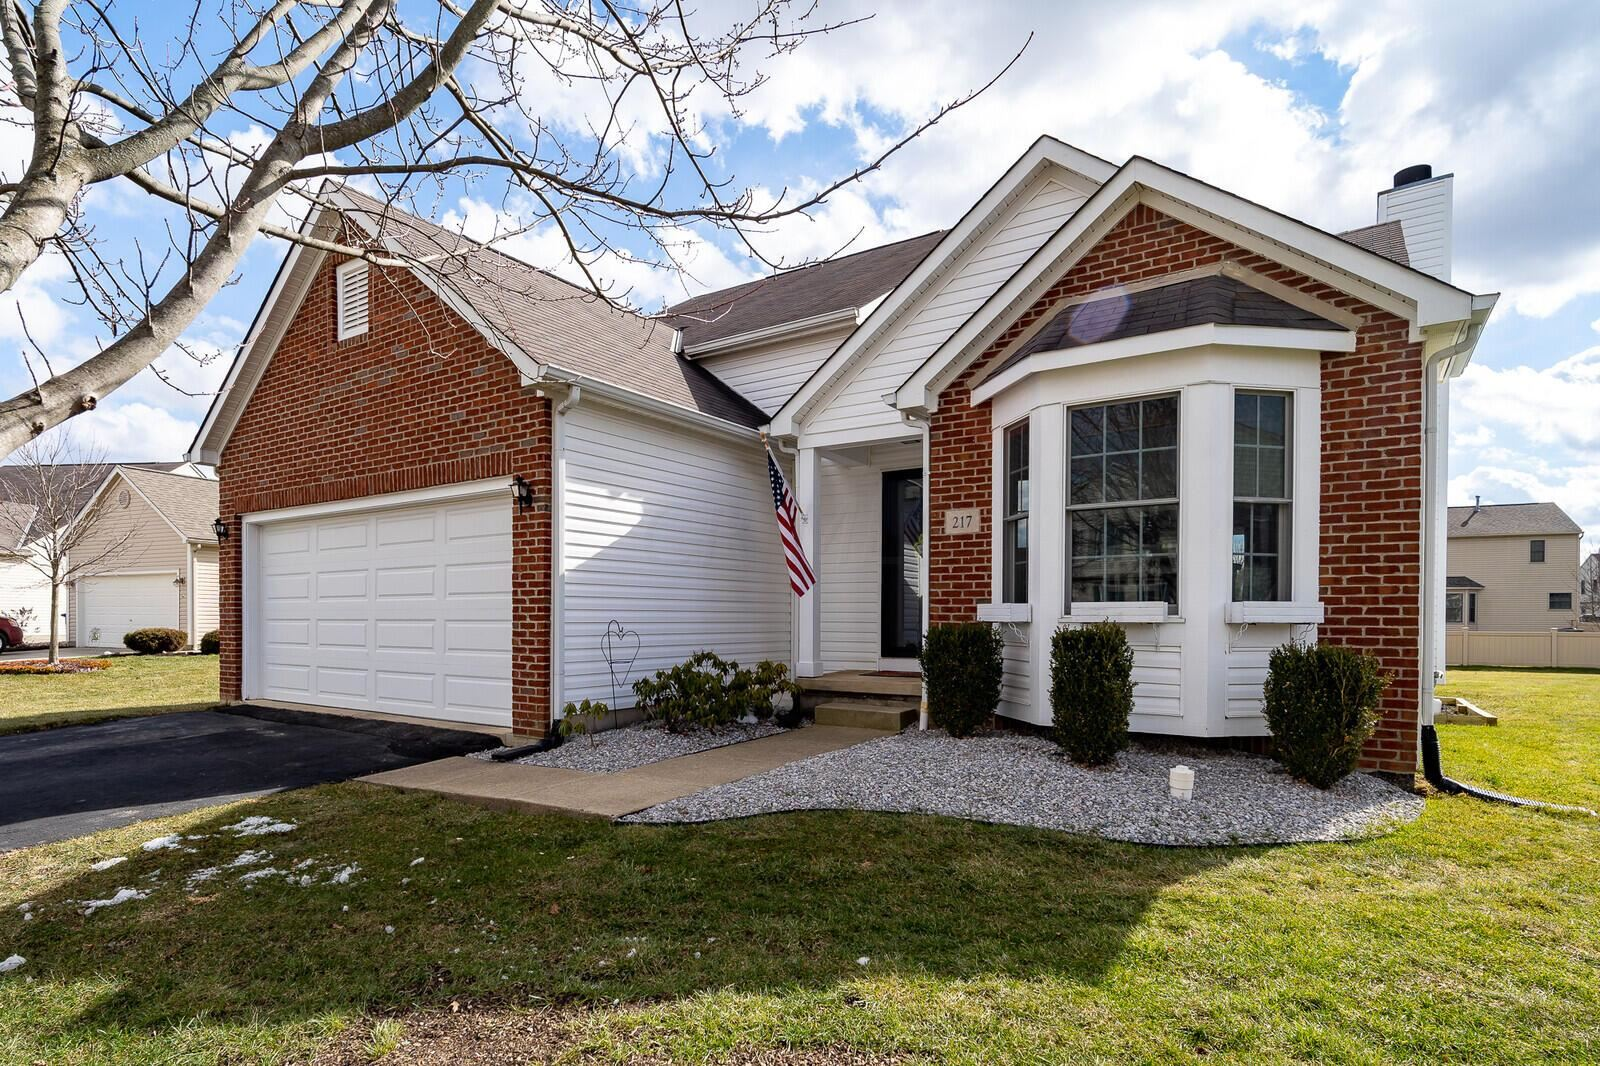 Photo of 217 Brushmore Court, Delaware, OH 43015 (MLS # 221005669)